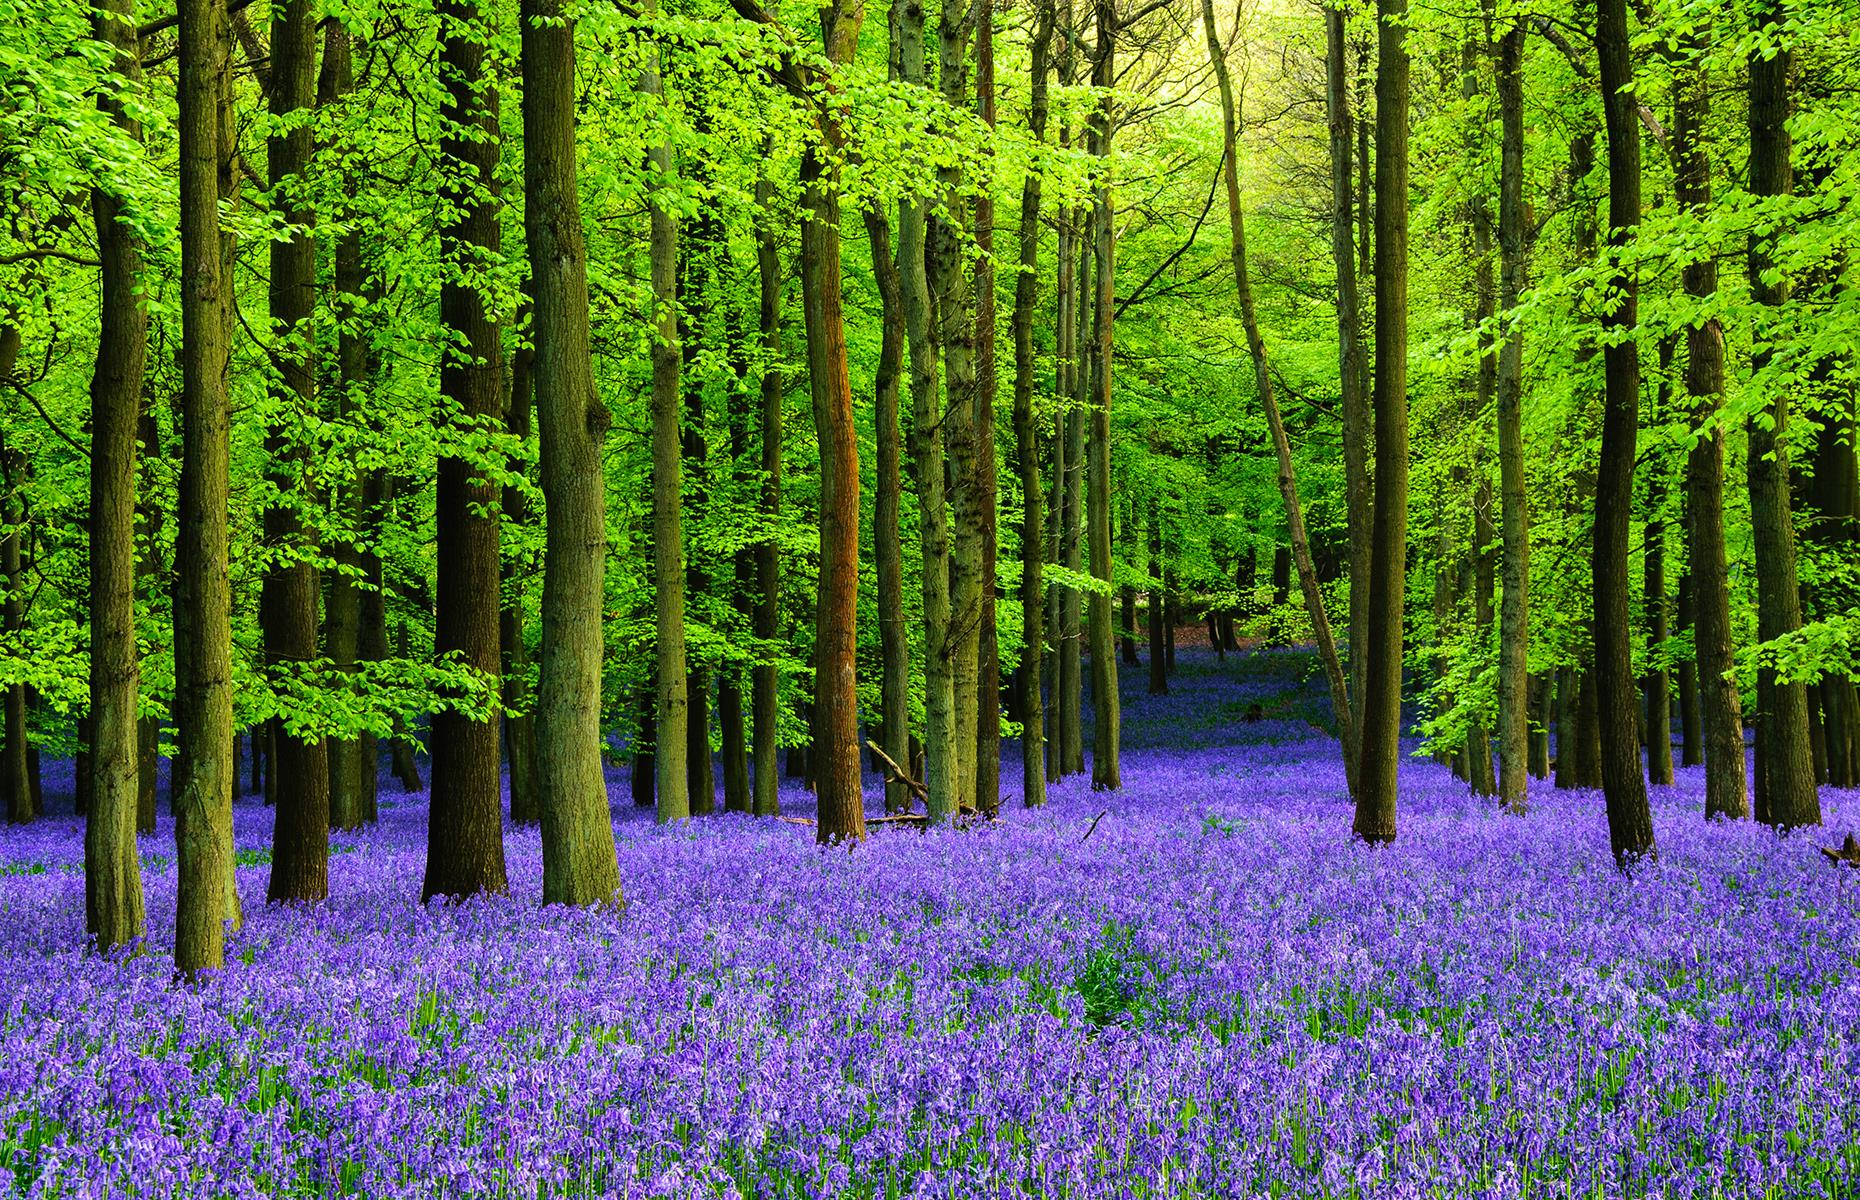 Slide 9 of 41: Covering ancient woodlands in a carpet of purple in April and May, bluebell flowering in the UK is an enchanting sight. Although bluebells grow across many parts of the country, some of the most beautiful places include Blickling Estate in Norfolk, Lake District National Park, Wepham Wood and Ashridge Estate in Hertfordshire.